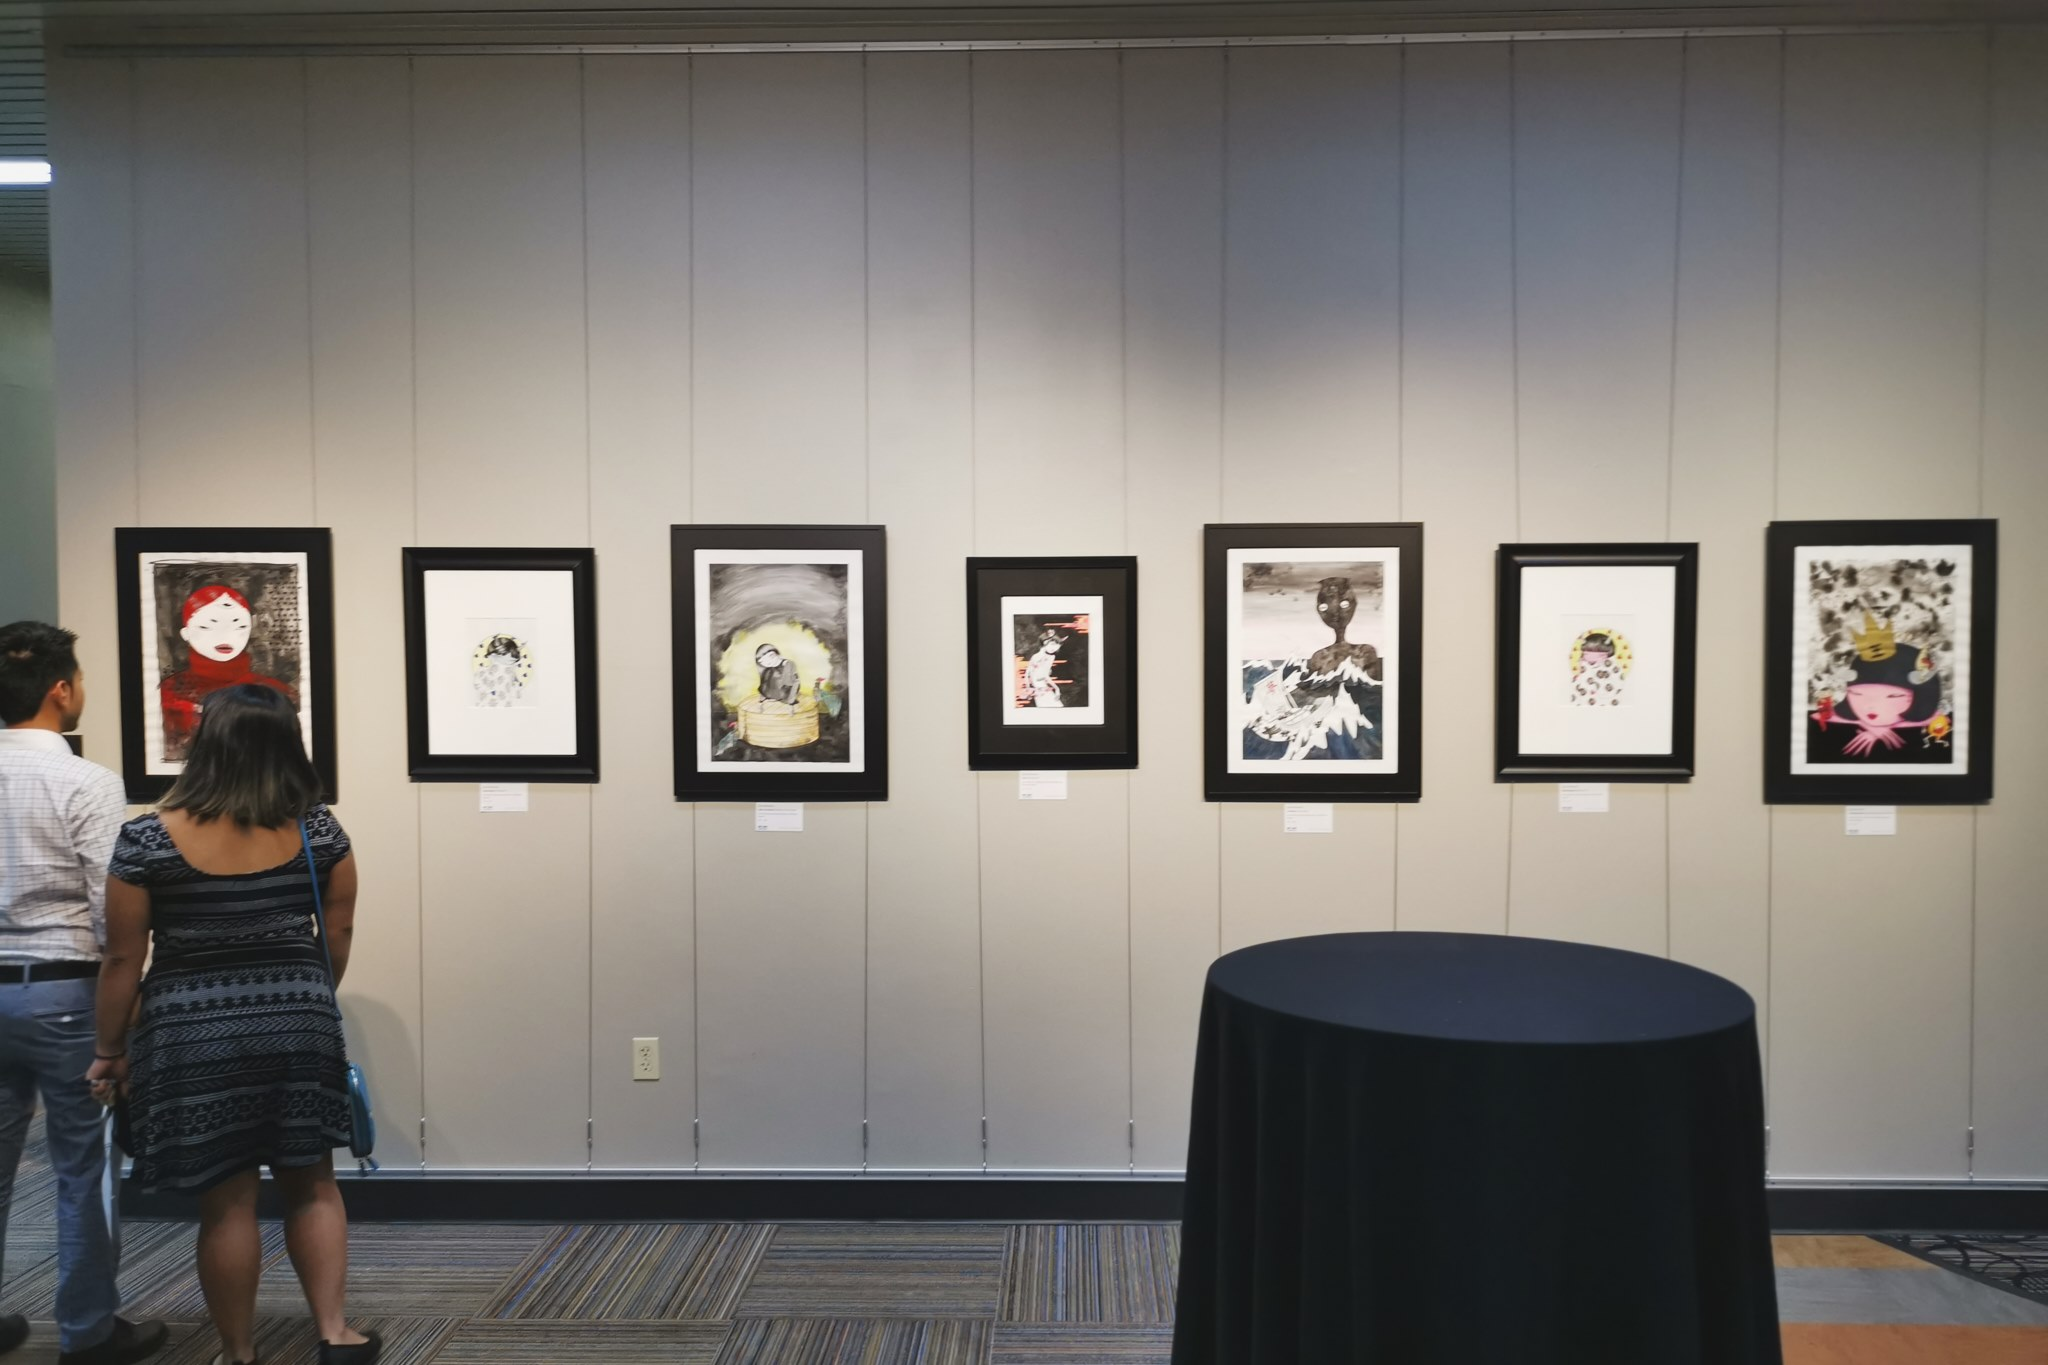 Series of work on display from Nippon no Mukashi Banashi (Old Folk Tales from Japan) - Photo Credit: Jeffrey Enriquez